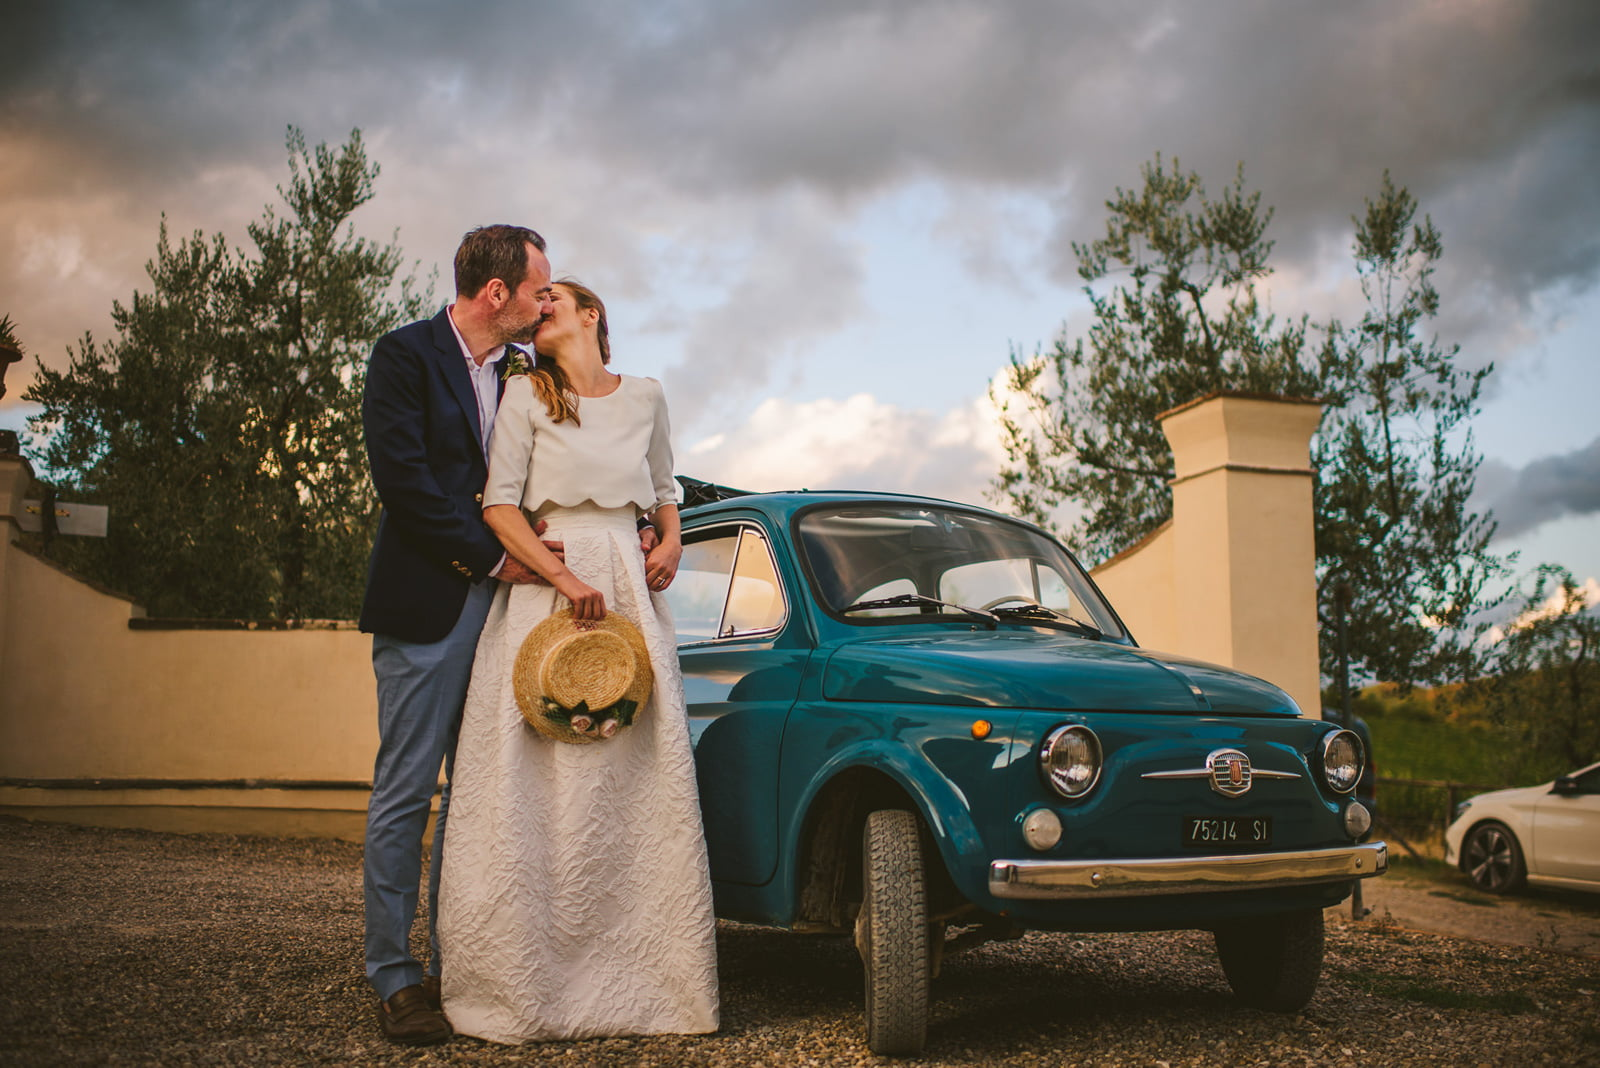 Lovely Wedding in Villa at Rignana by Federico Pannacci Wedding Photographer 87